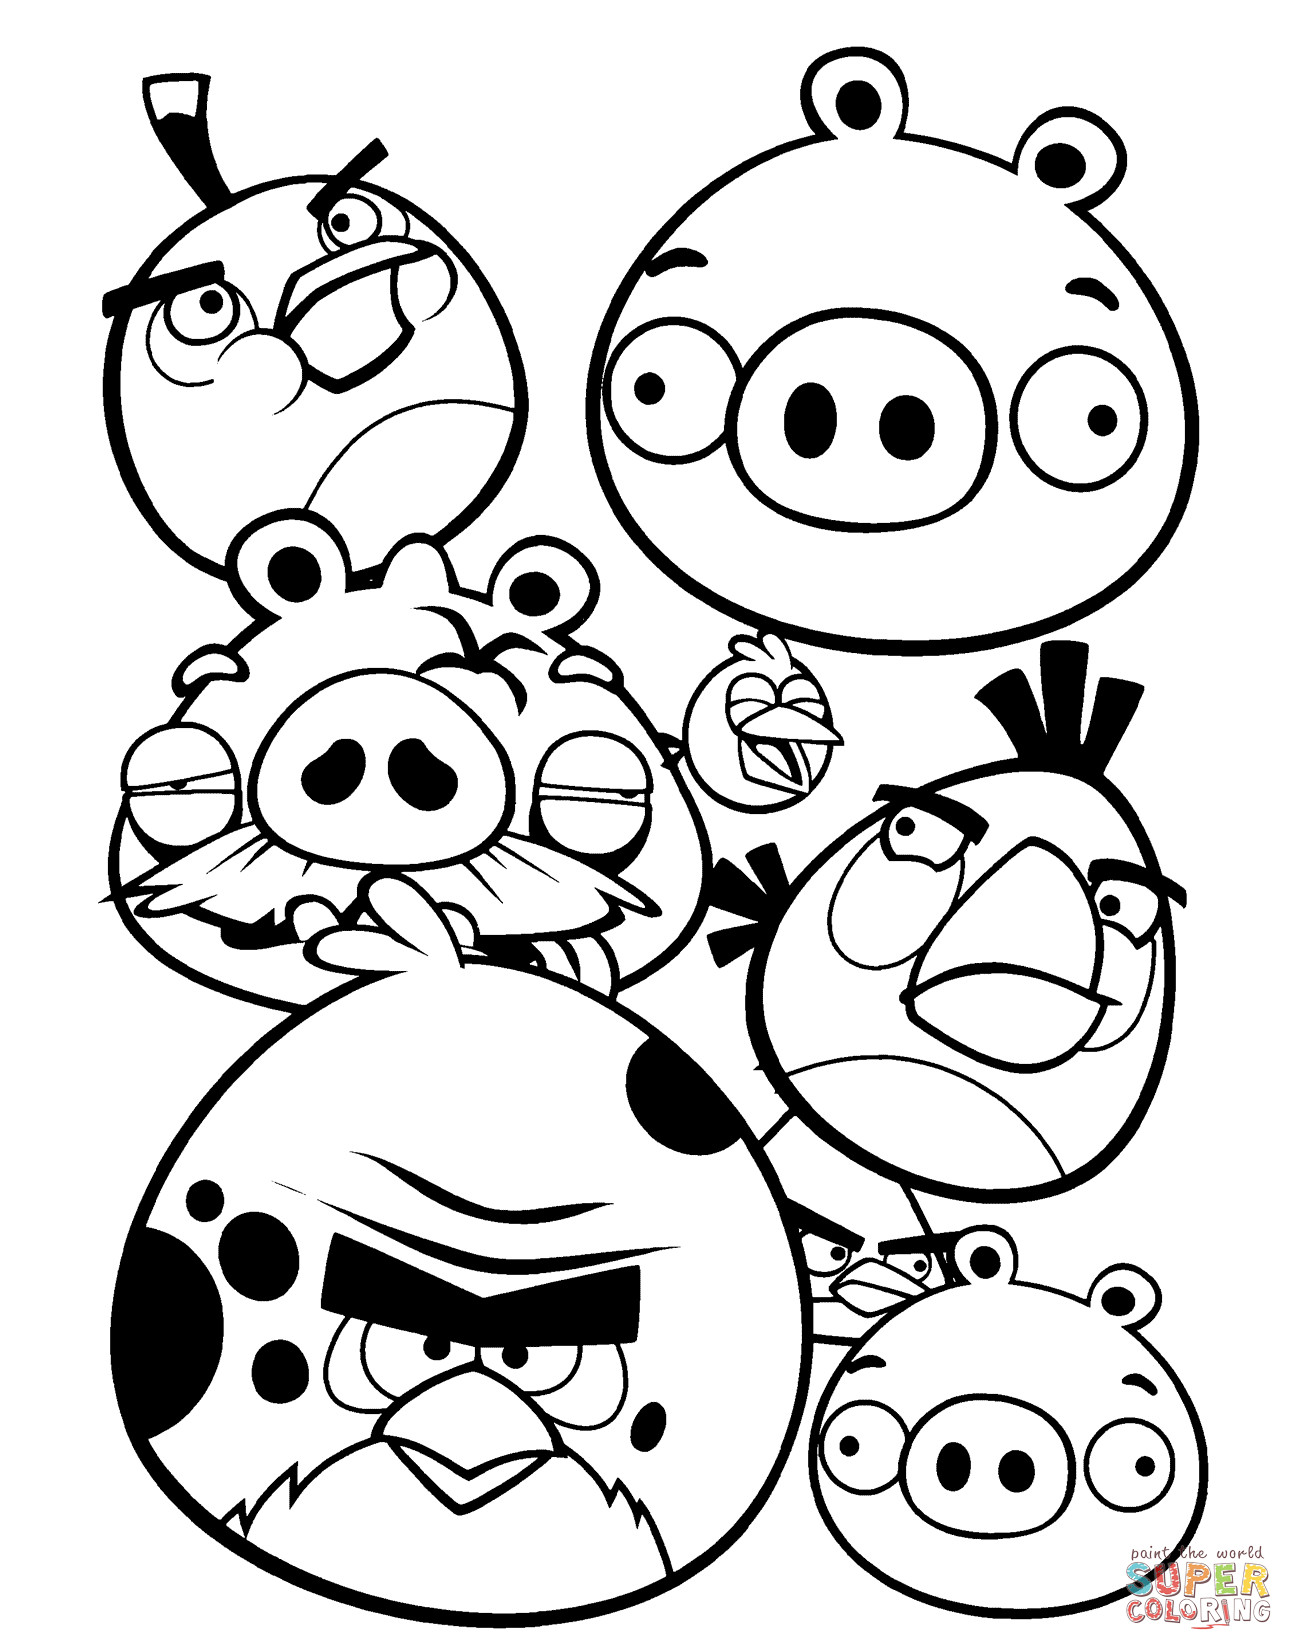 Best ideas about Angry Birds Coloring Pages For Kids Printable . Save or Pin Angry Birds coloring page Now.